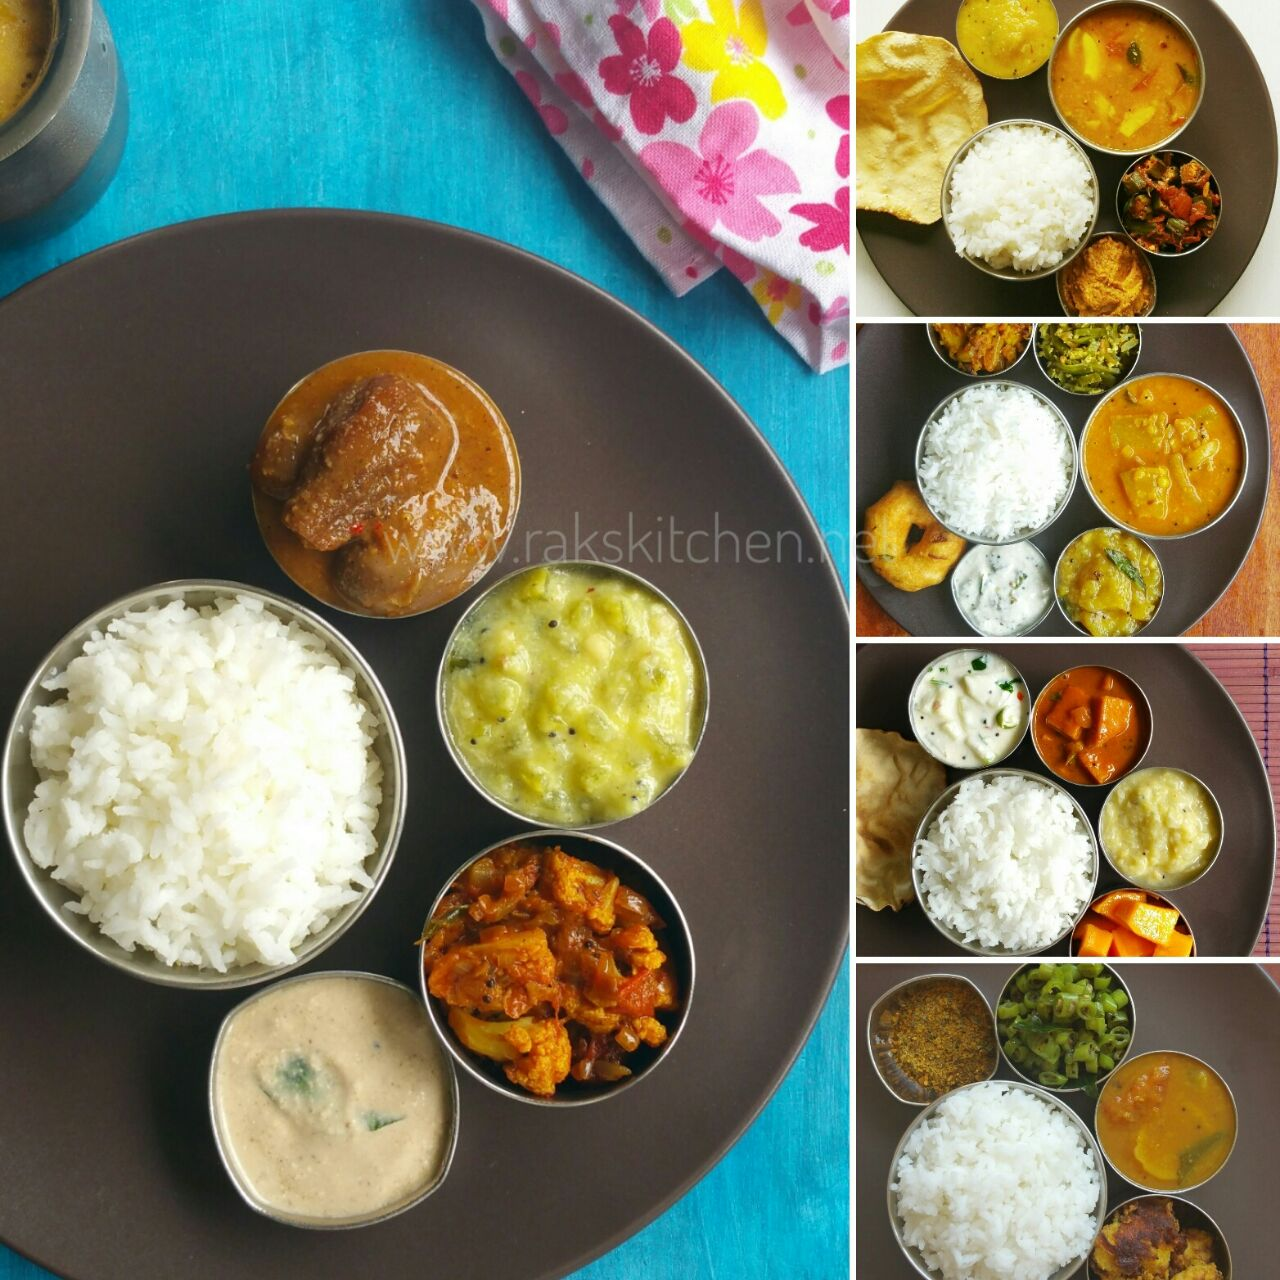 South indian weekly lunch planner raks kitchen south indian weekday lunch planner forumfinder Images